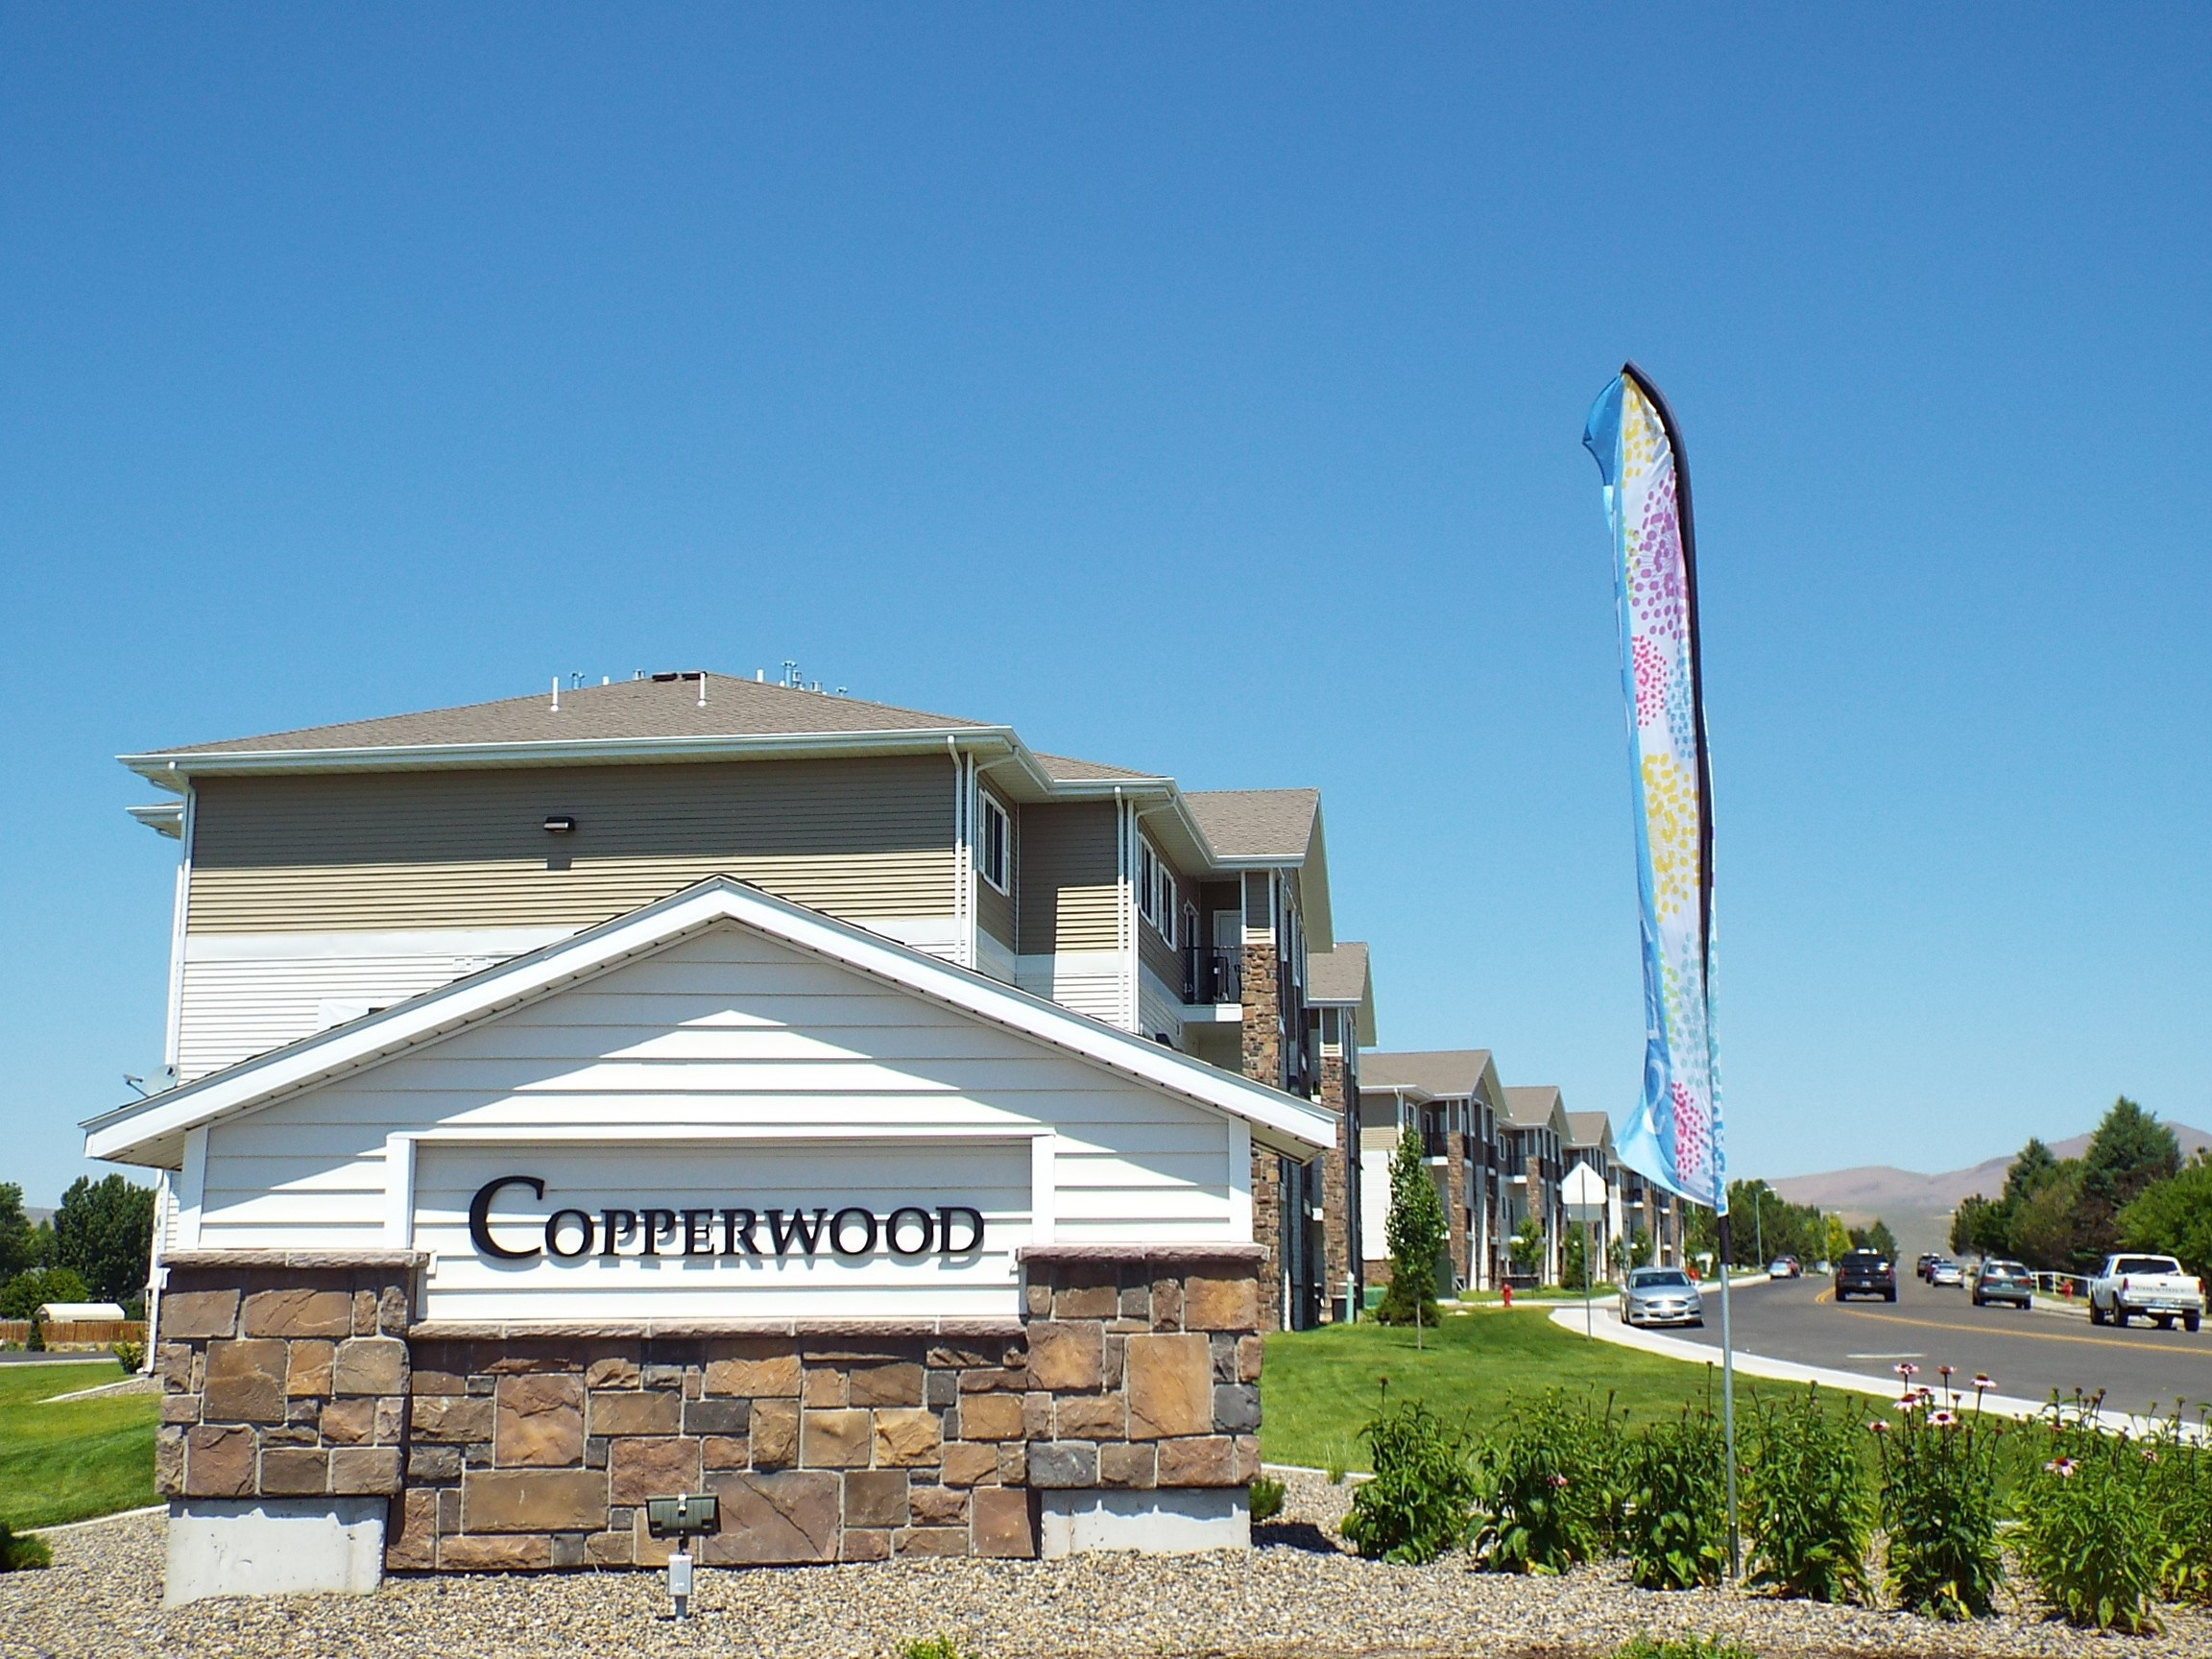 Copperwood Apts Apartments for Rent 2788 5th St Elko NV